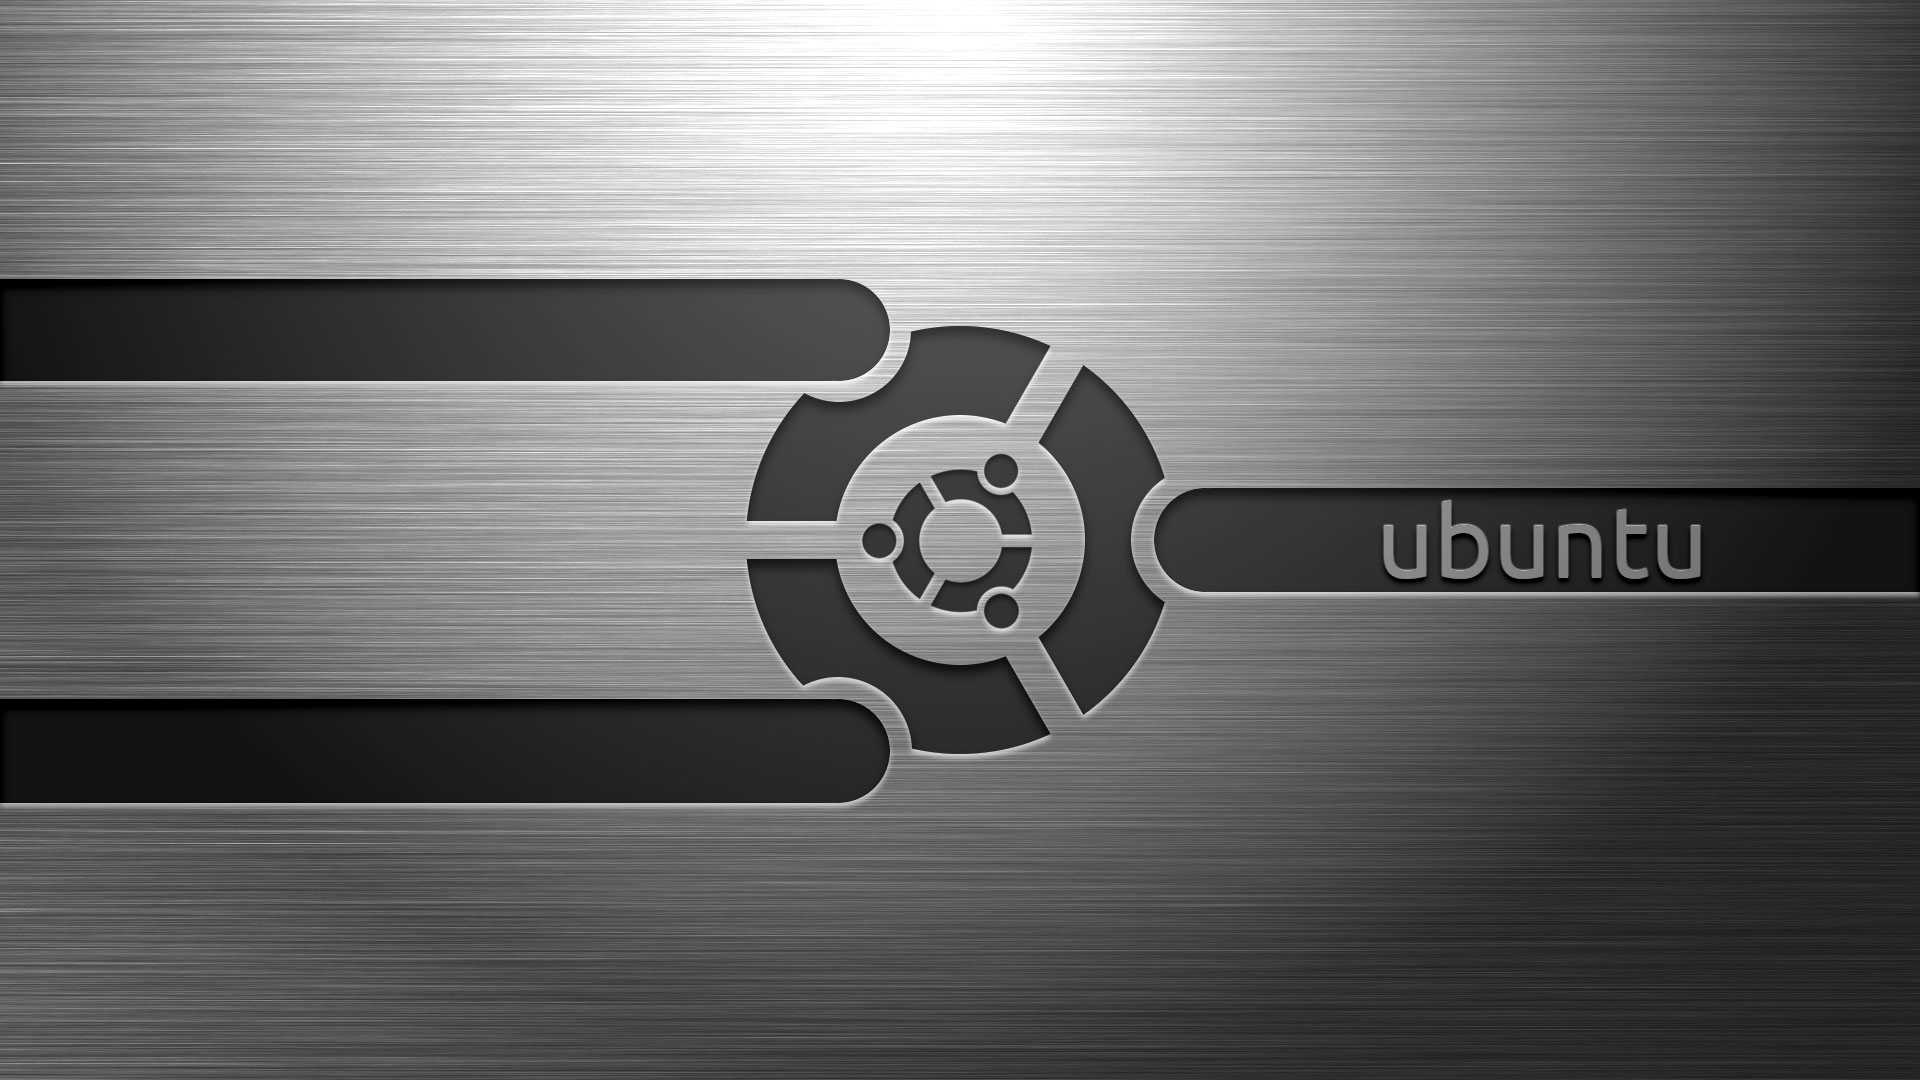 Free Ubuntu Wallpaper